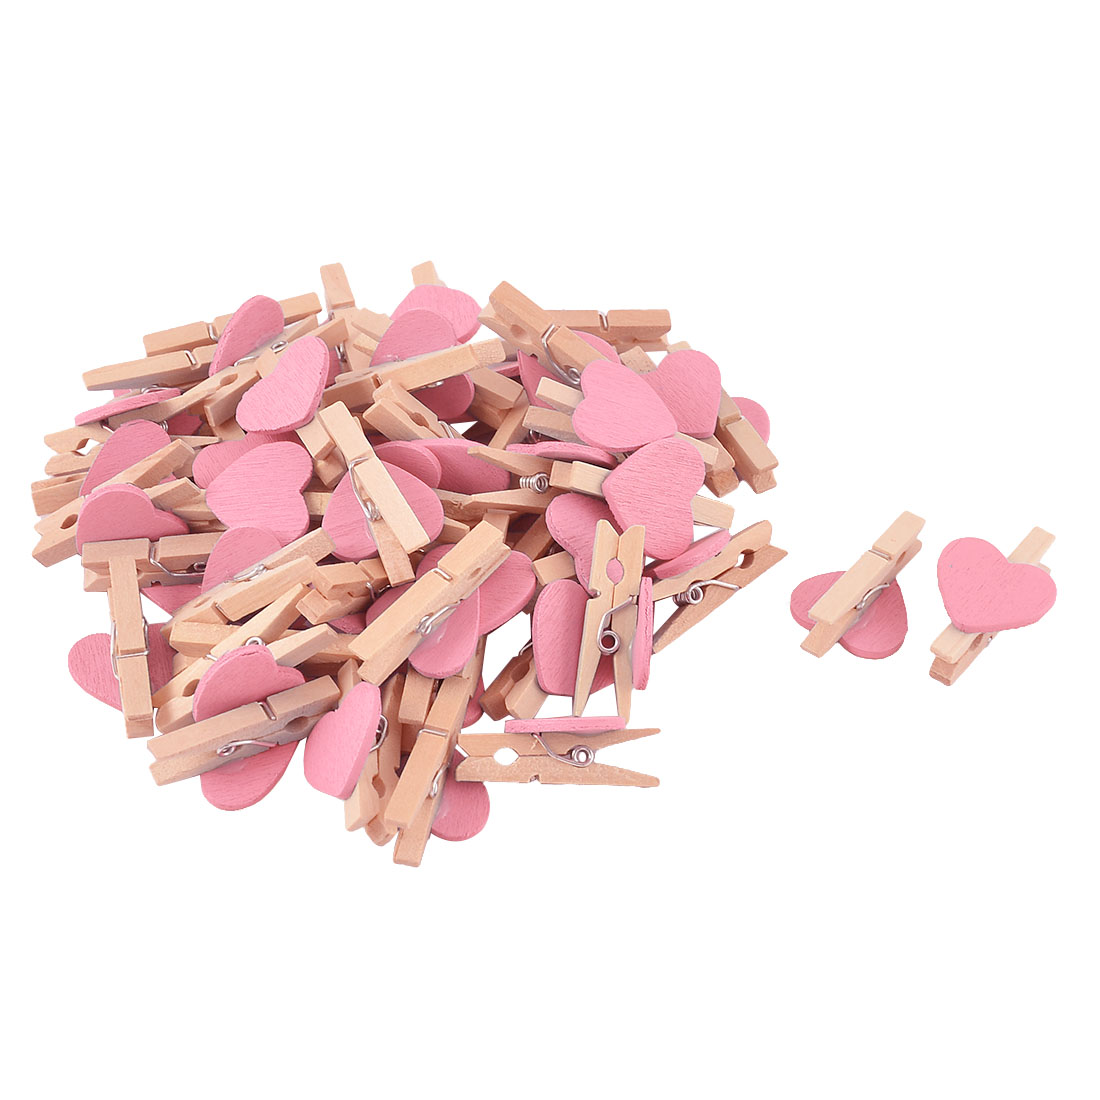 Card Photo Decoration DIY Heart Shape Crafts Mini Wooden Clip Pink 50pcs